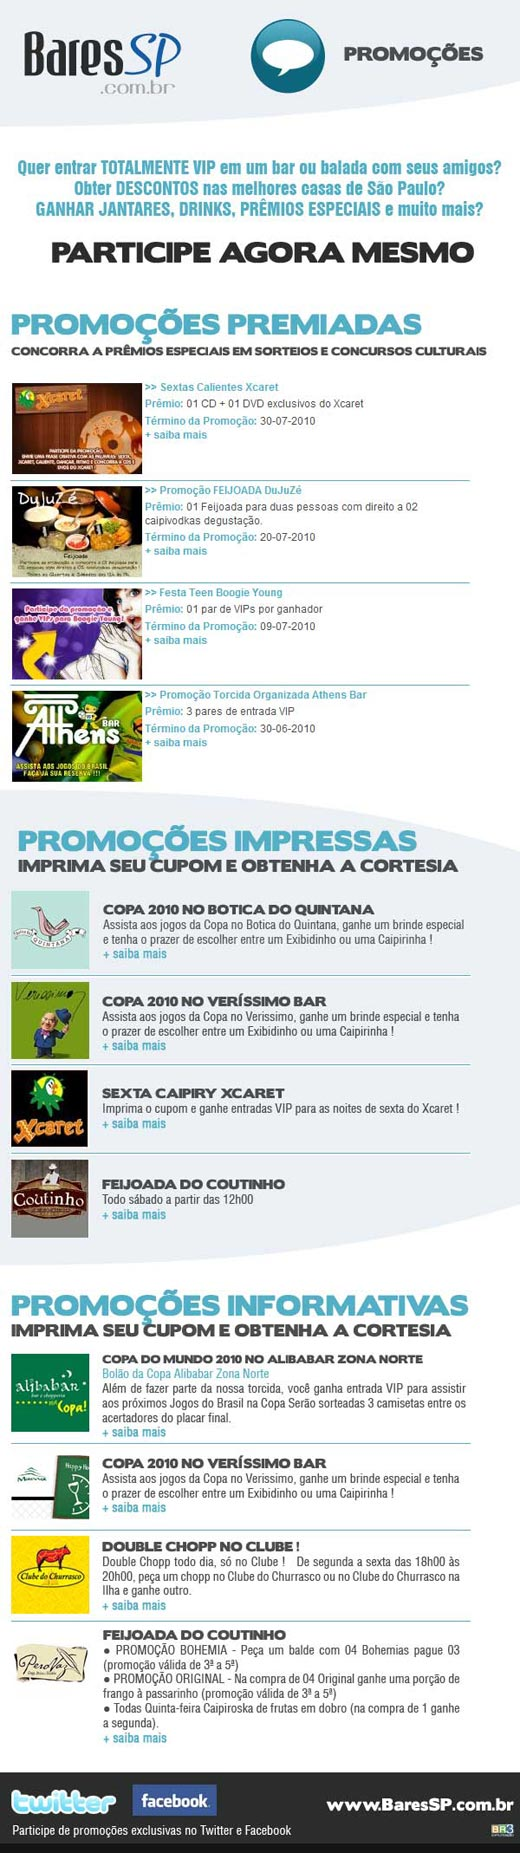 E-mail marketing Promoções Br3 Site sites cases image